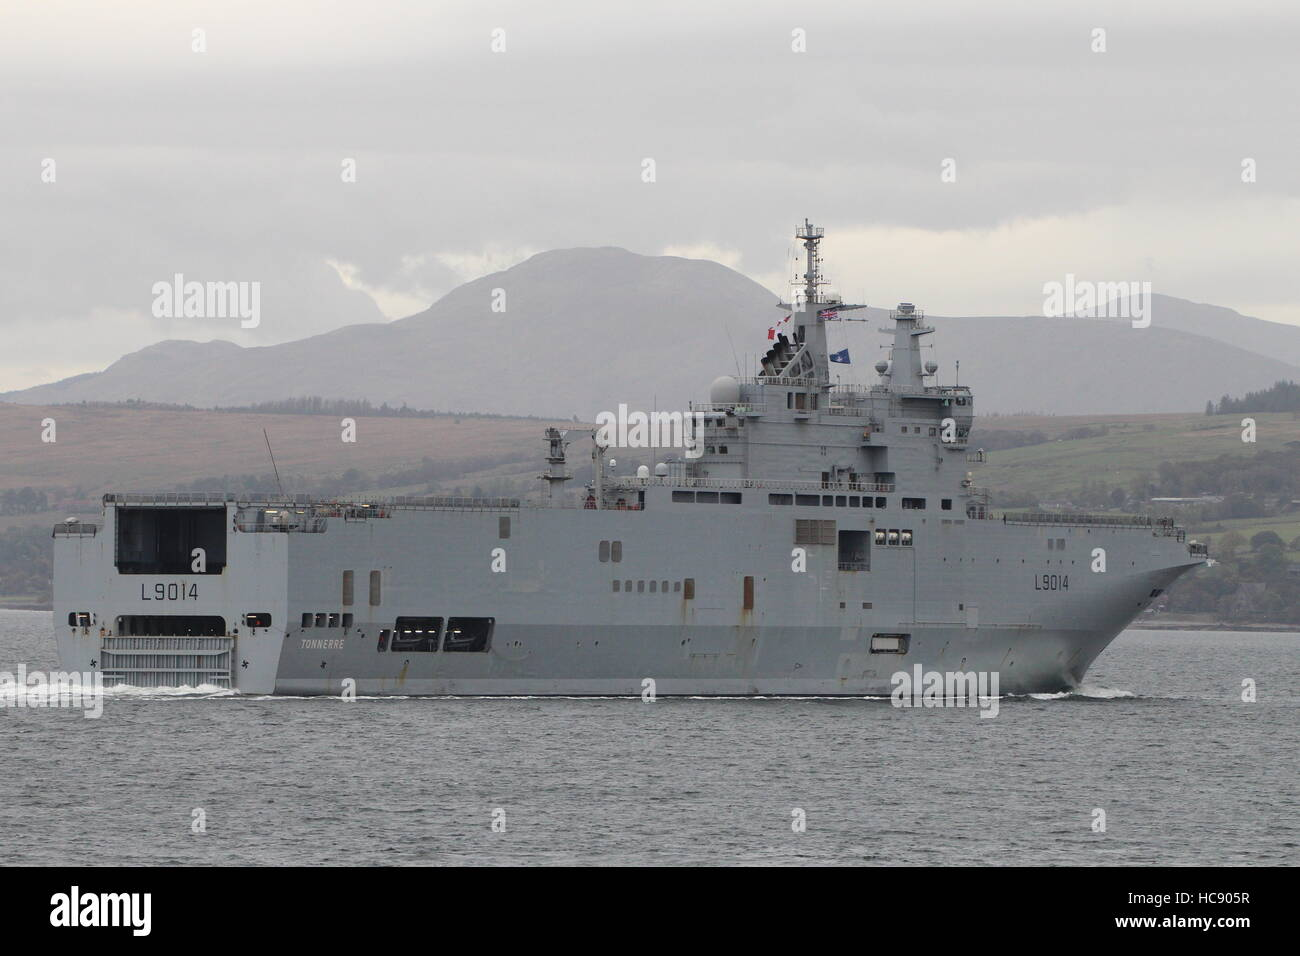 fs tonnerre l9014 a mistral class amphibious assault ship of the french